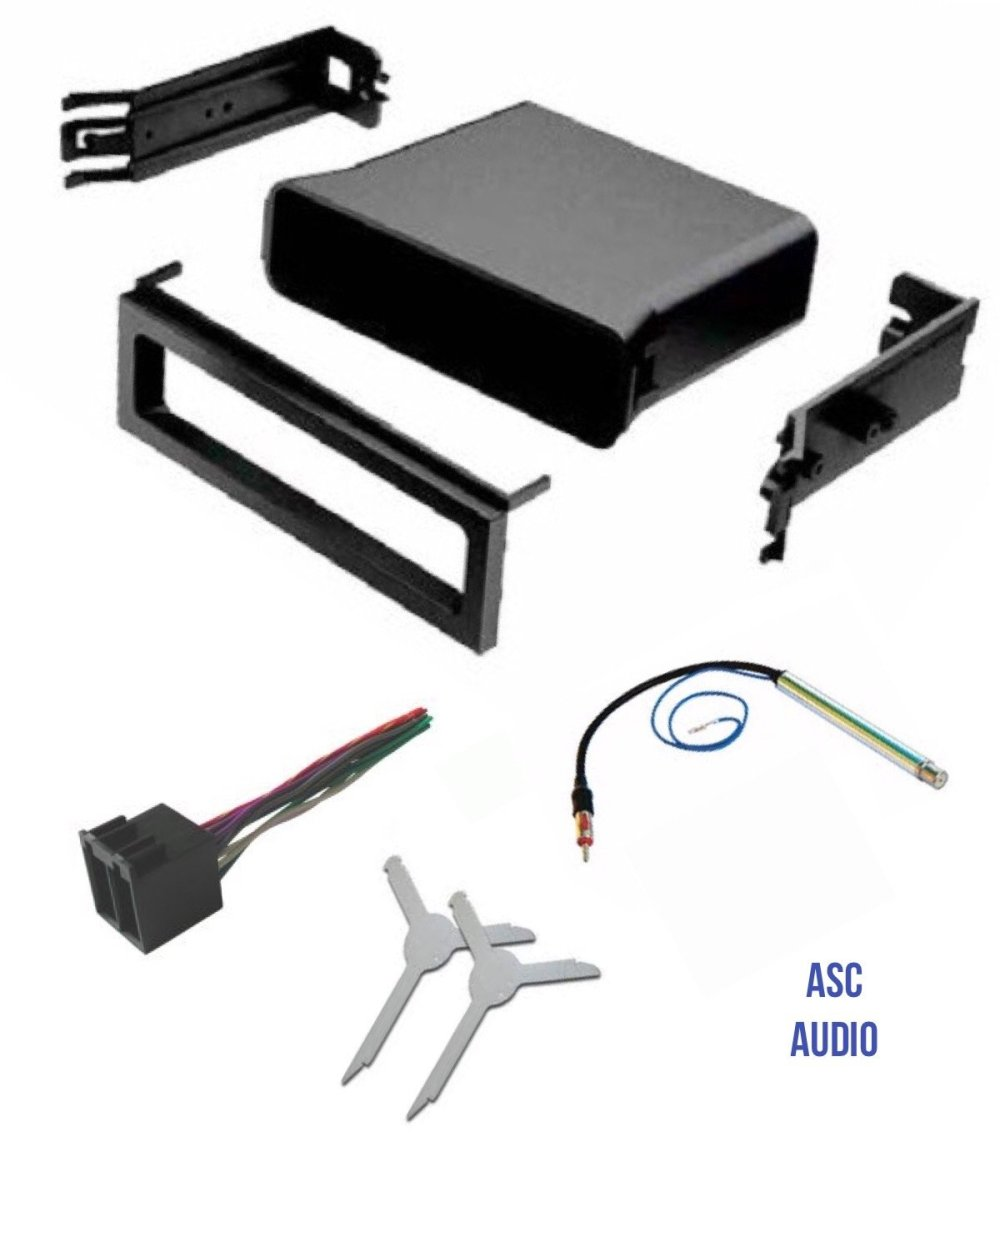 medium resolution of get quotations asc audio car stereo dash pocket kit wire harness antenna adapter and radio